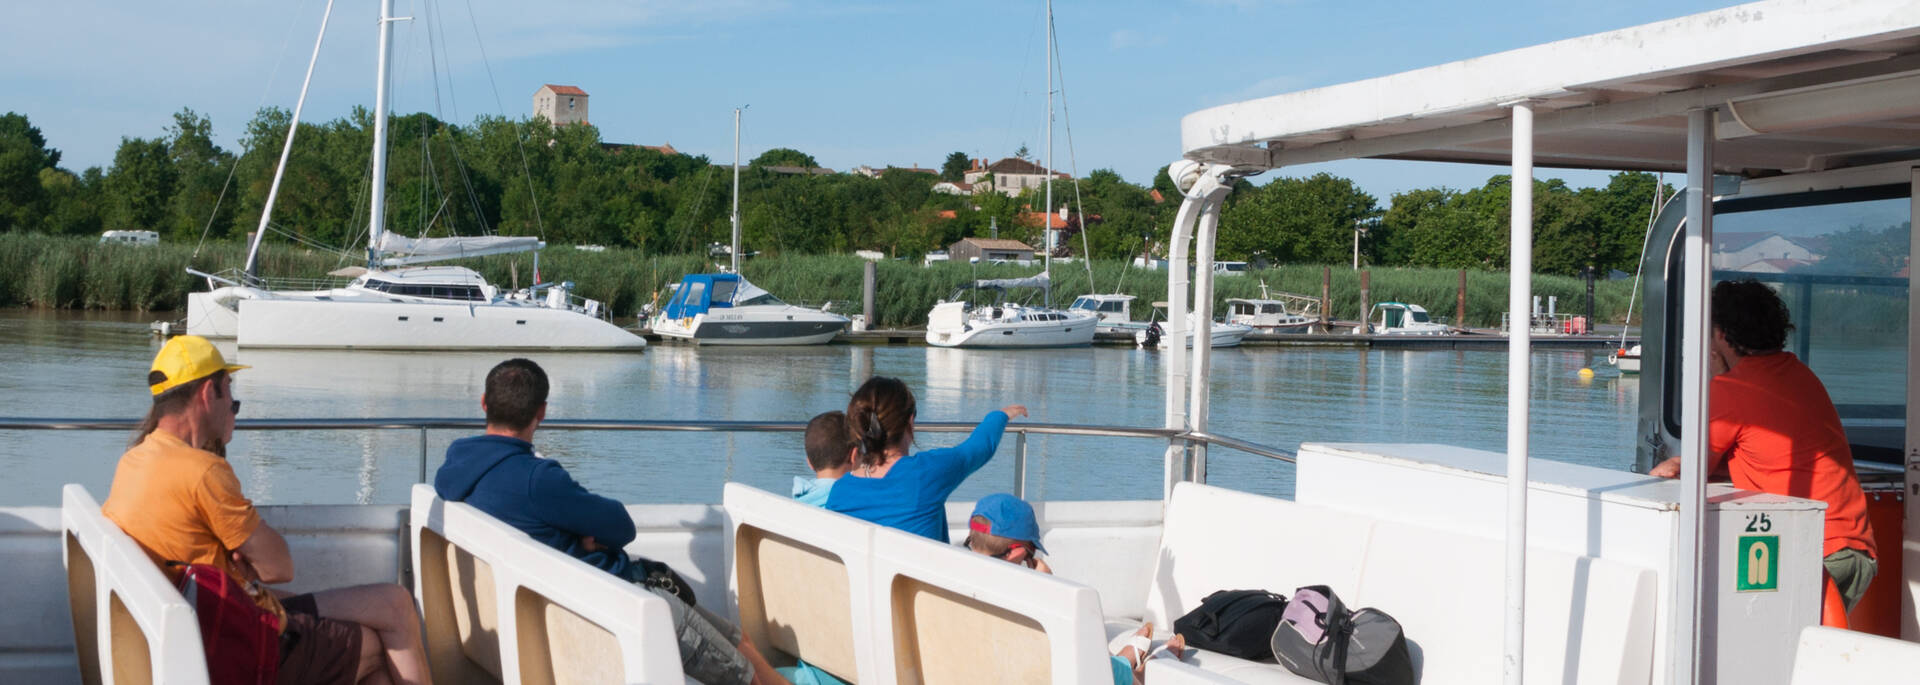 Cruise on the Charente river with Rochefort Croisières © Vincent Edwell